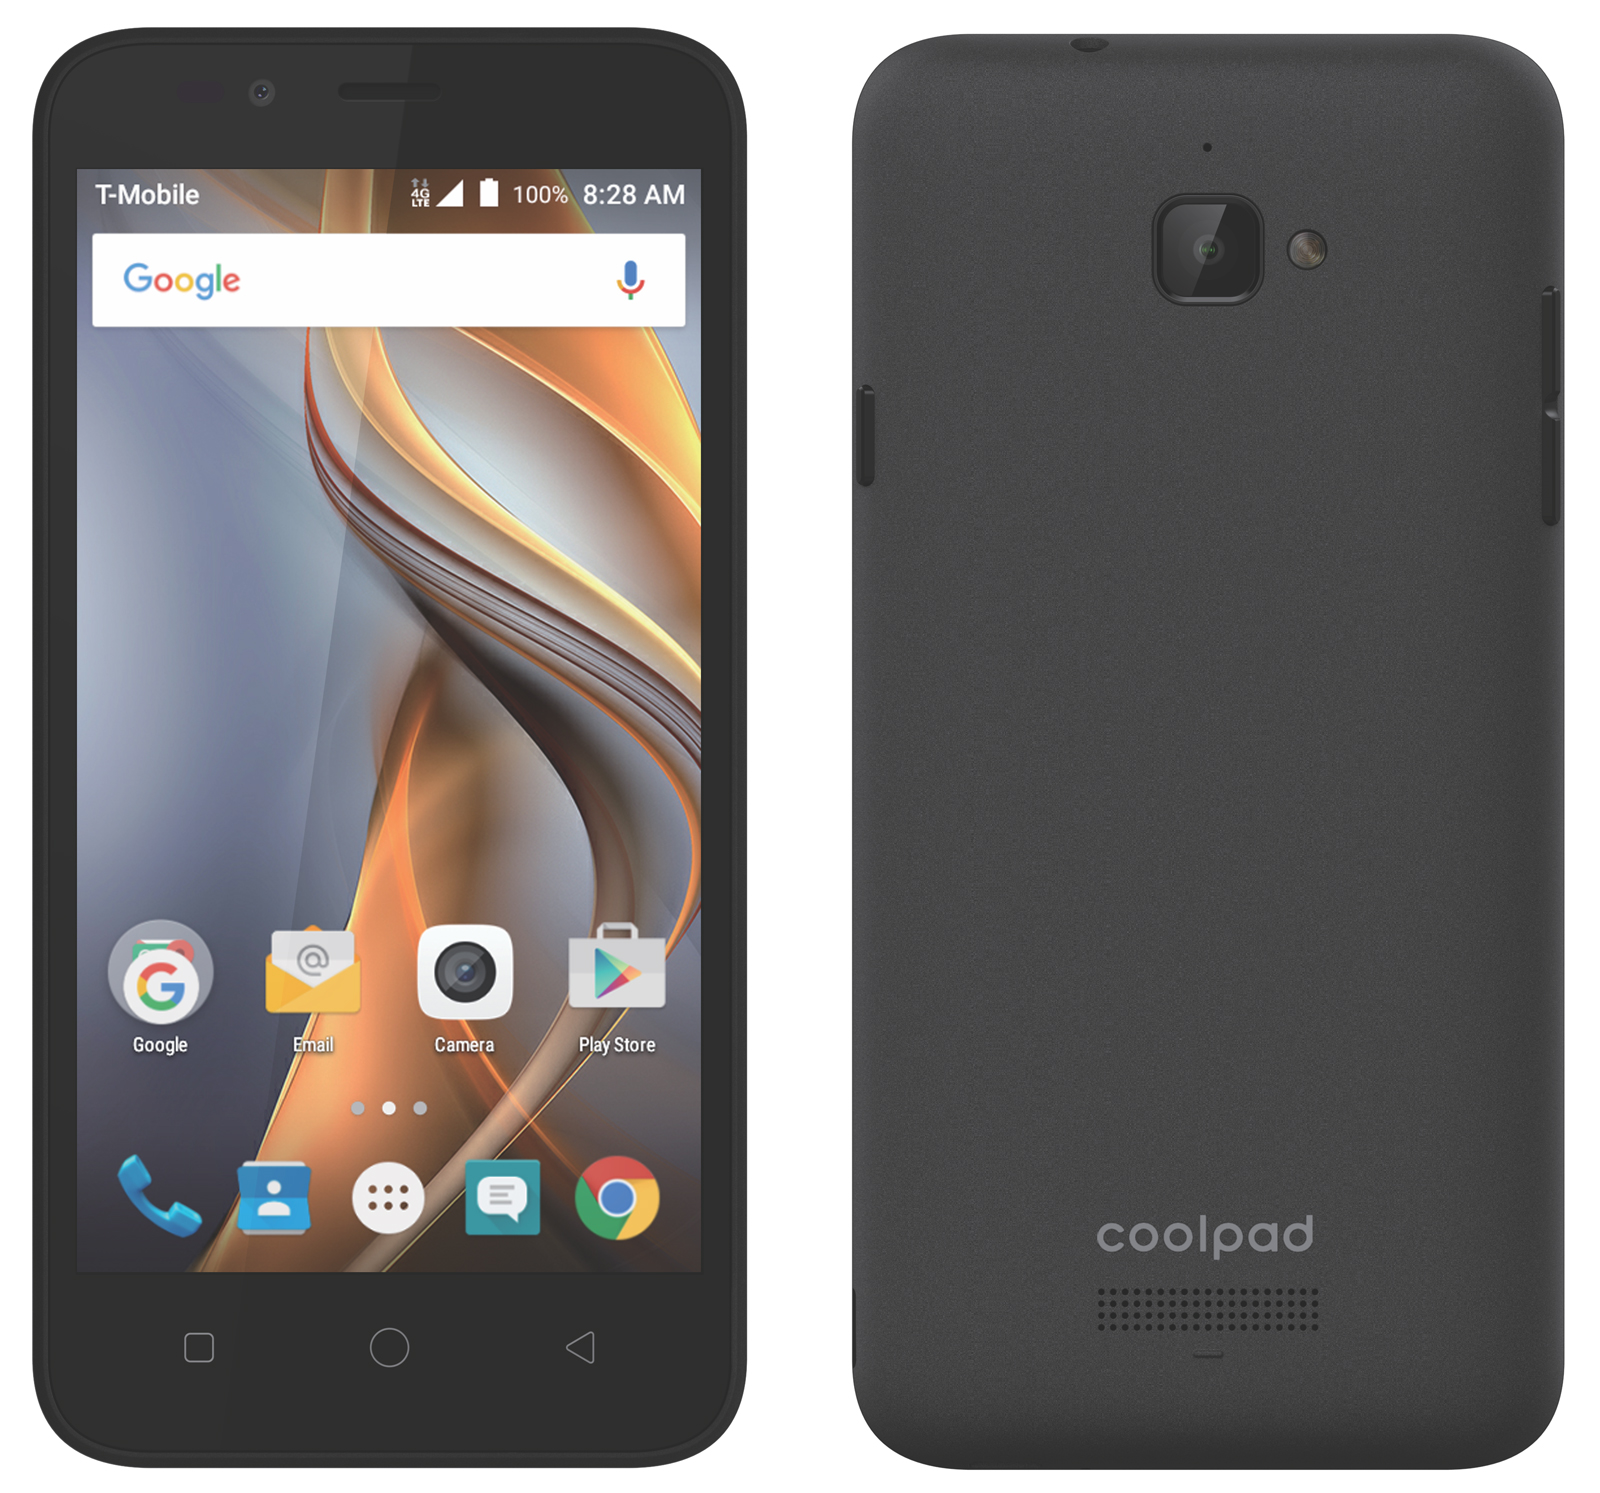 Coolpad Catalyst is one of several phones coming soon to T-Mobile